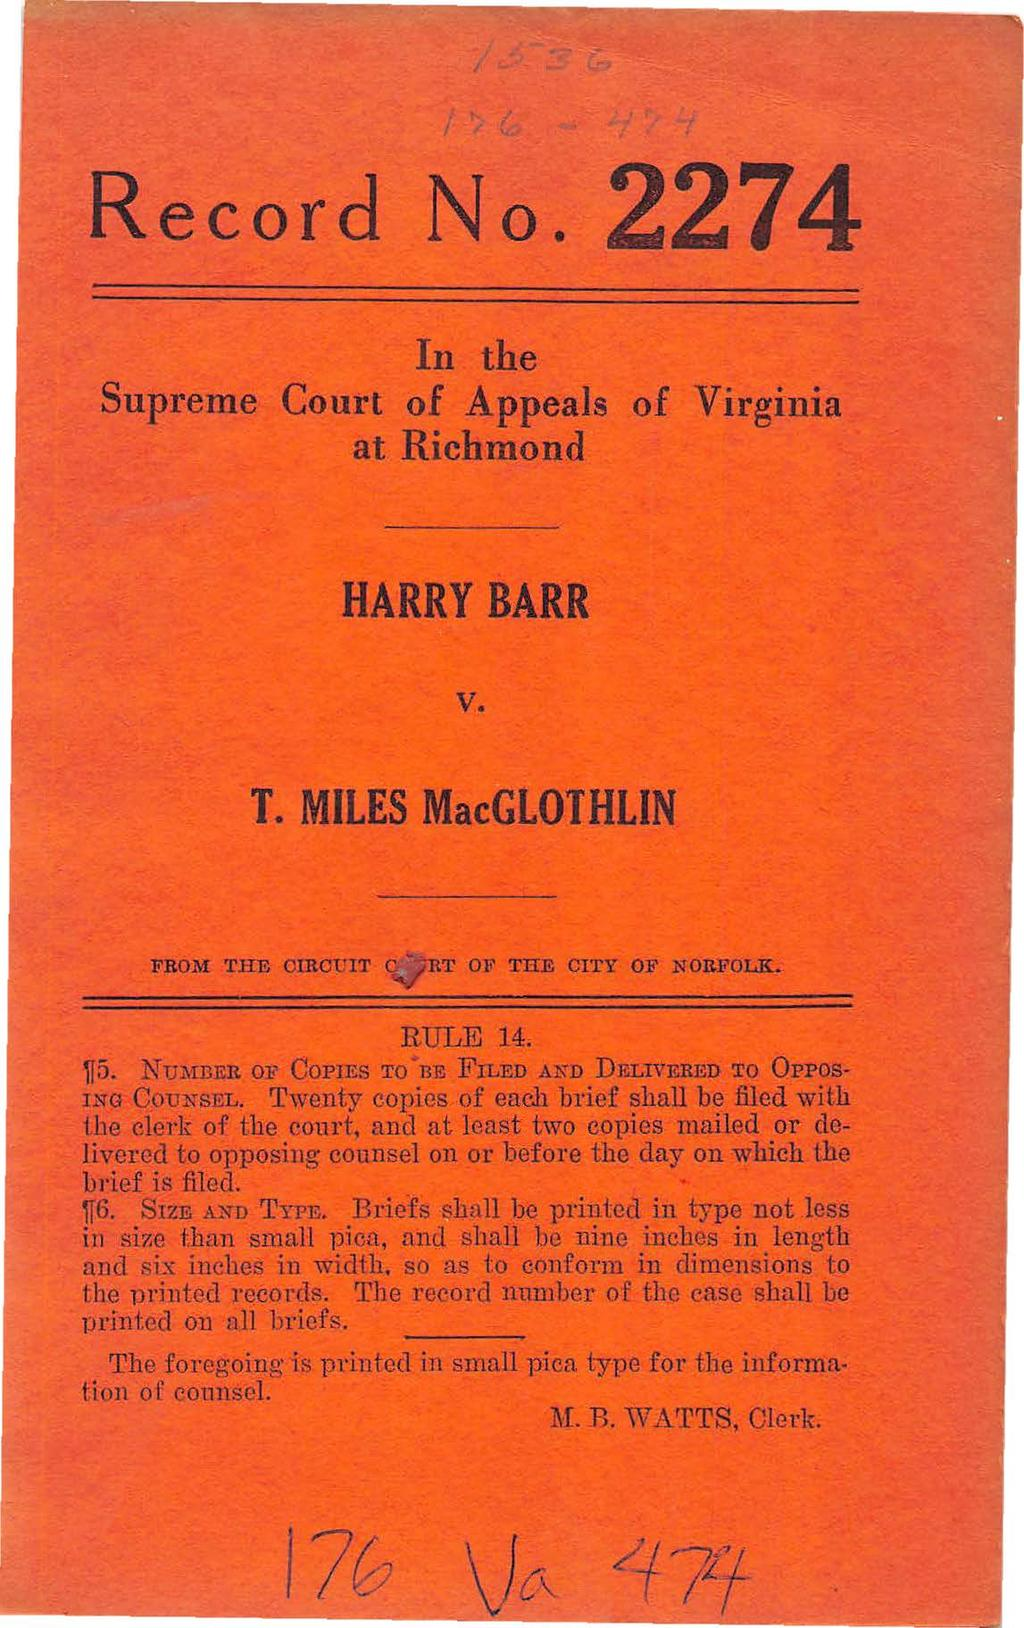 170 I Record No. 2274,( In the Supreme Court of Appeals of Virginia at Richmond HARRY BARR v. T. MILES MacGLOT HLIN FR OM THE CIRO-C IT C'0R'l.' 0 1? T IIE CITY OF NORFOLK. RULE 14.,r5.